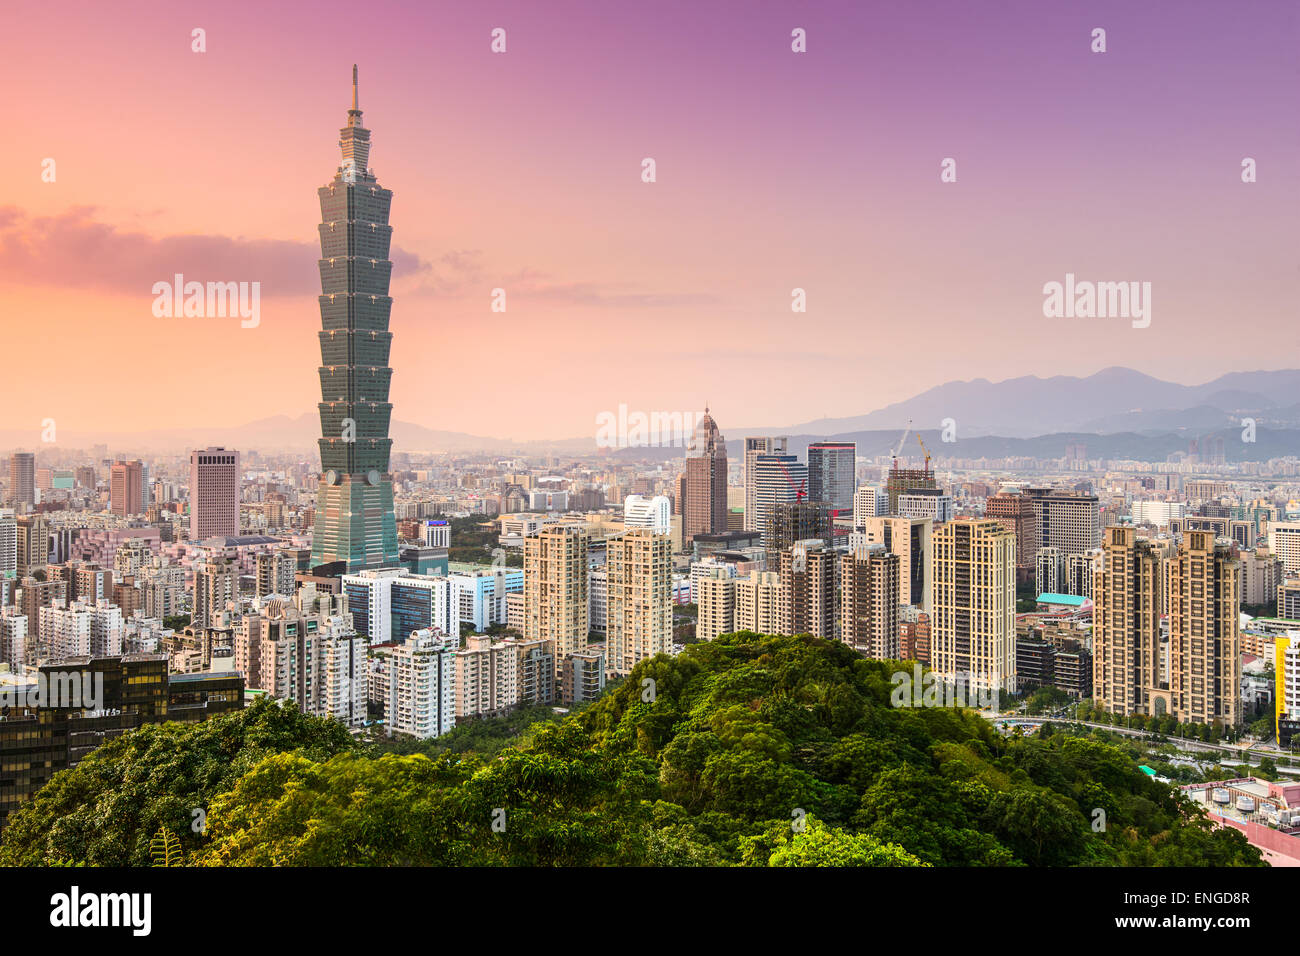 Taipei, Taiwan Skyline von Xinyi District. Stockbild